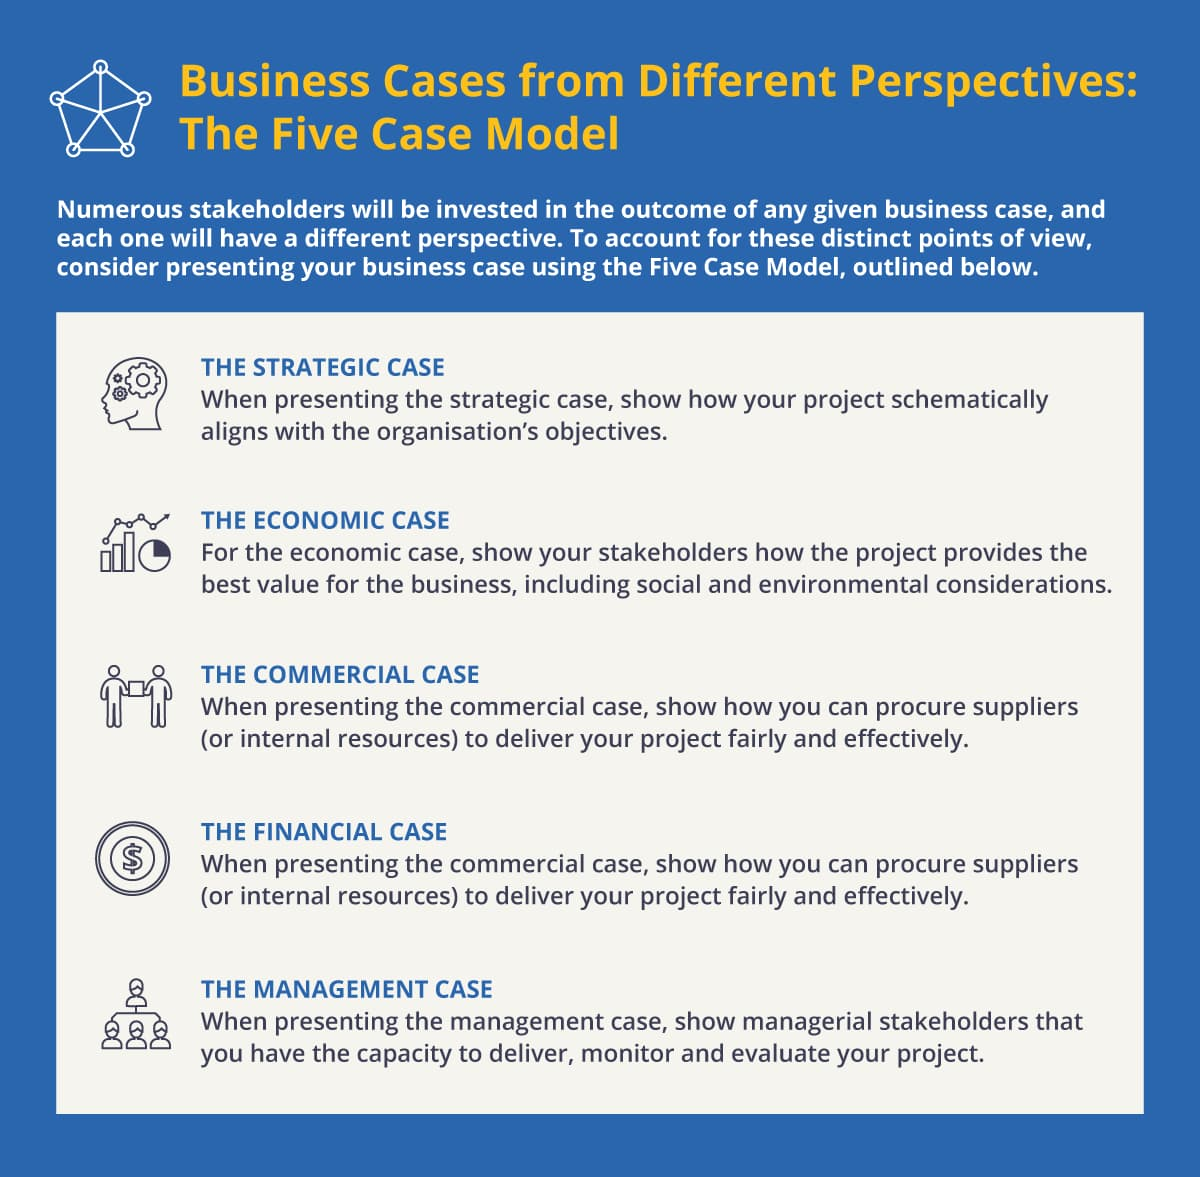 Business Cases from Different Perspectives: The Five Case Model